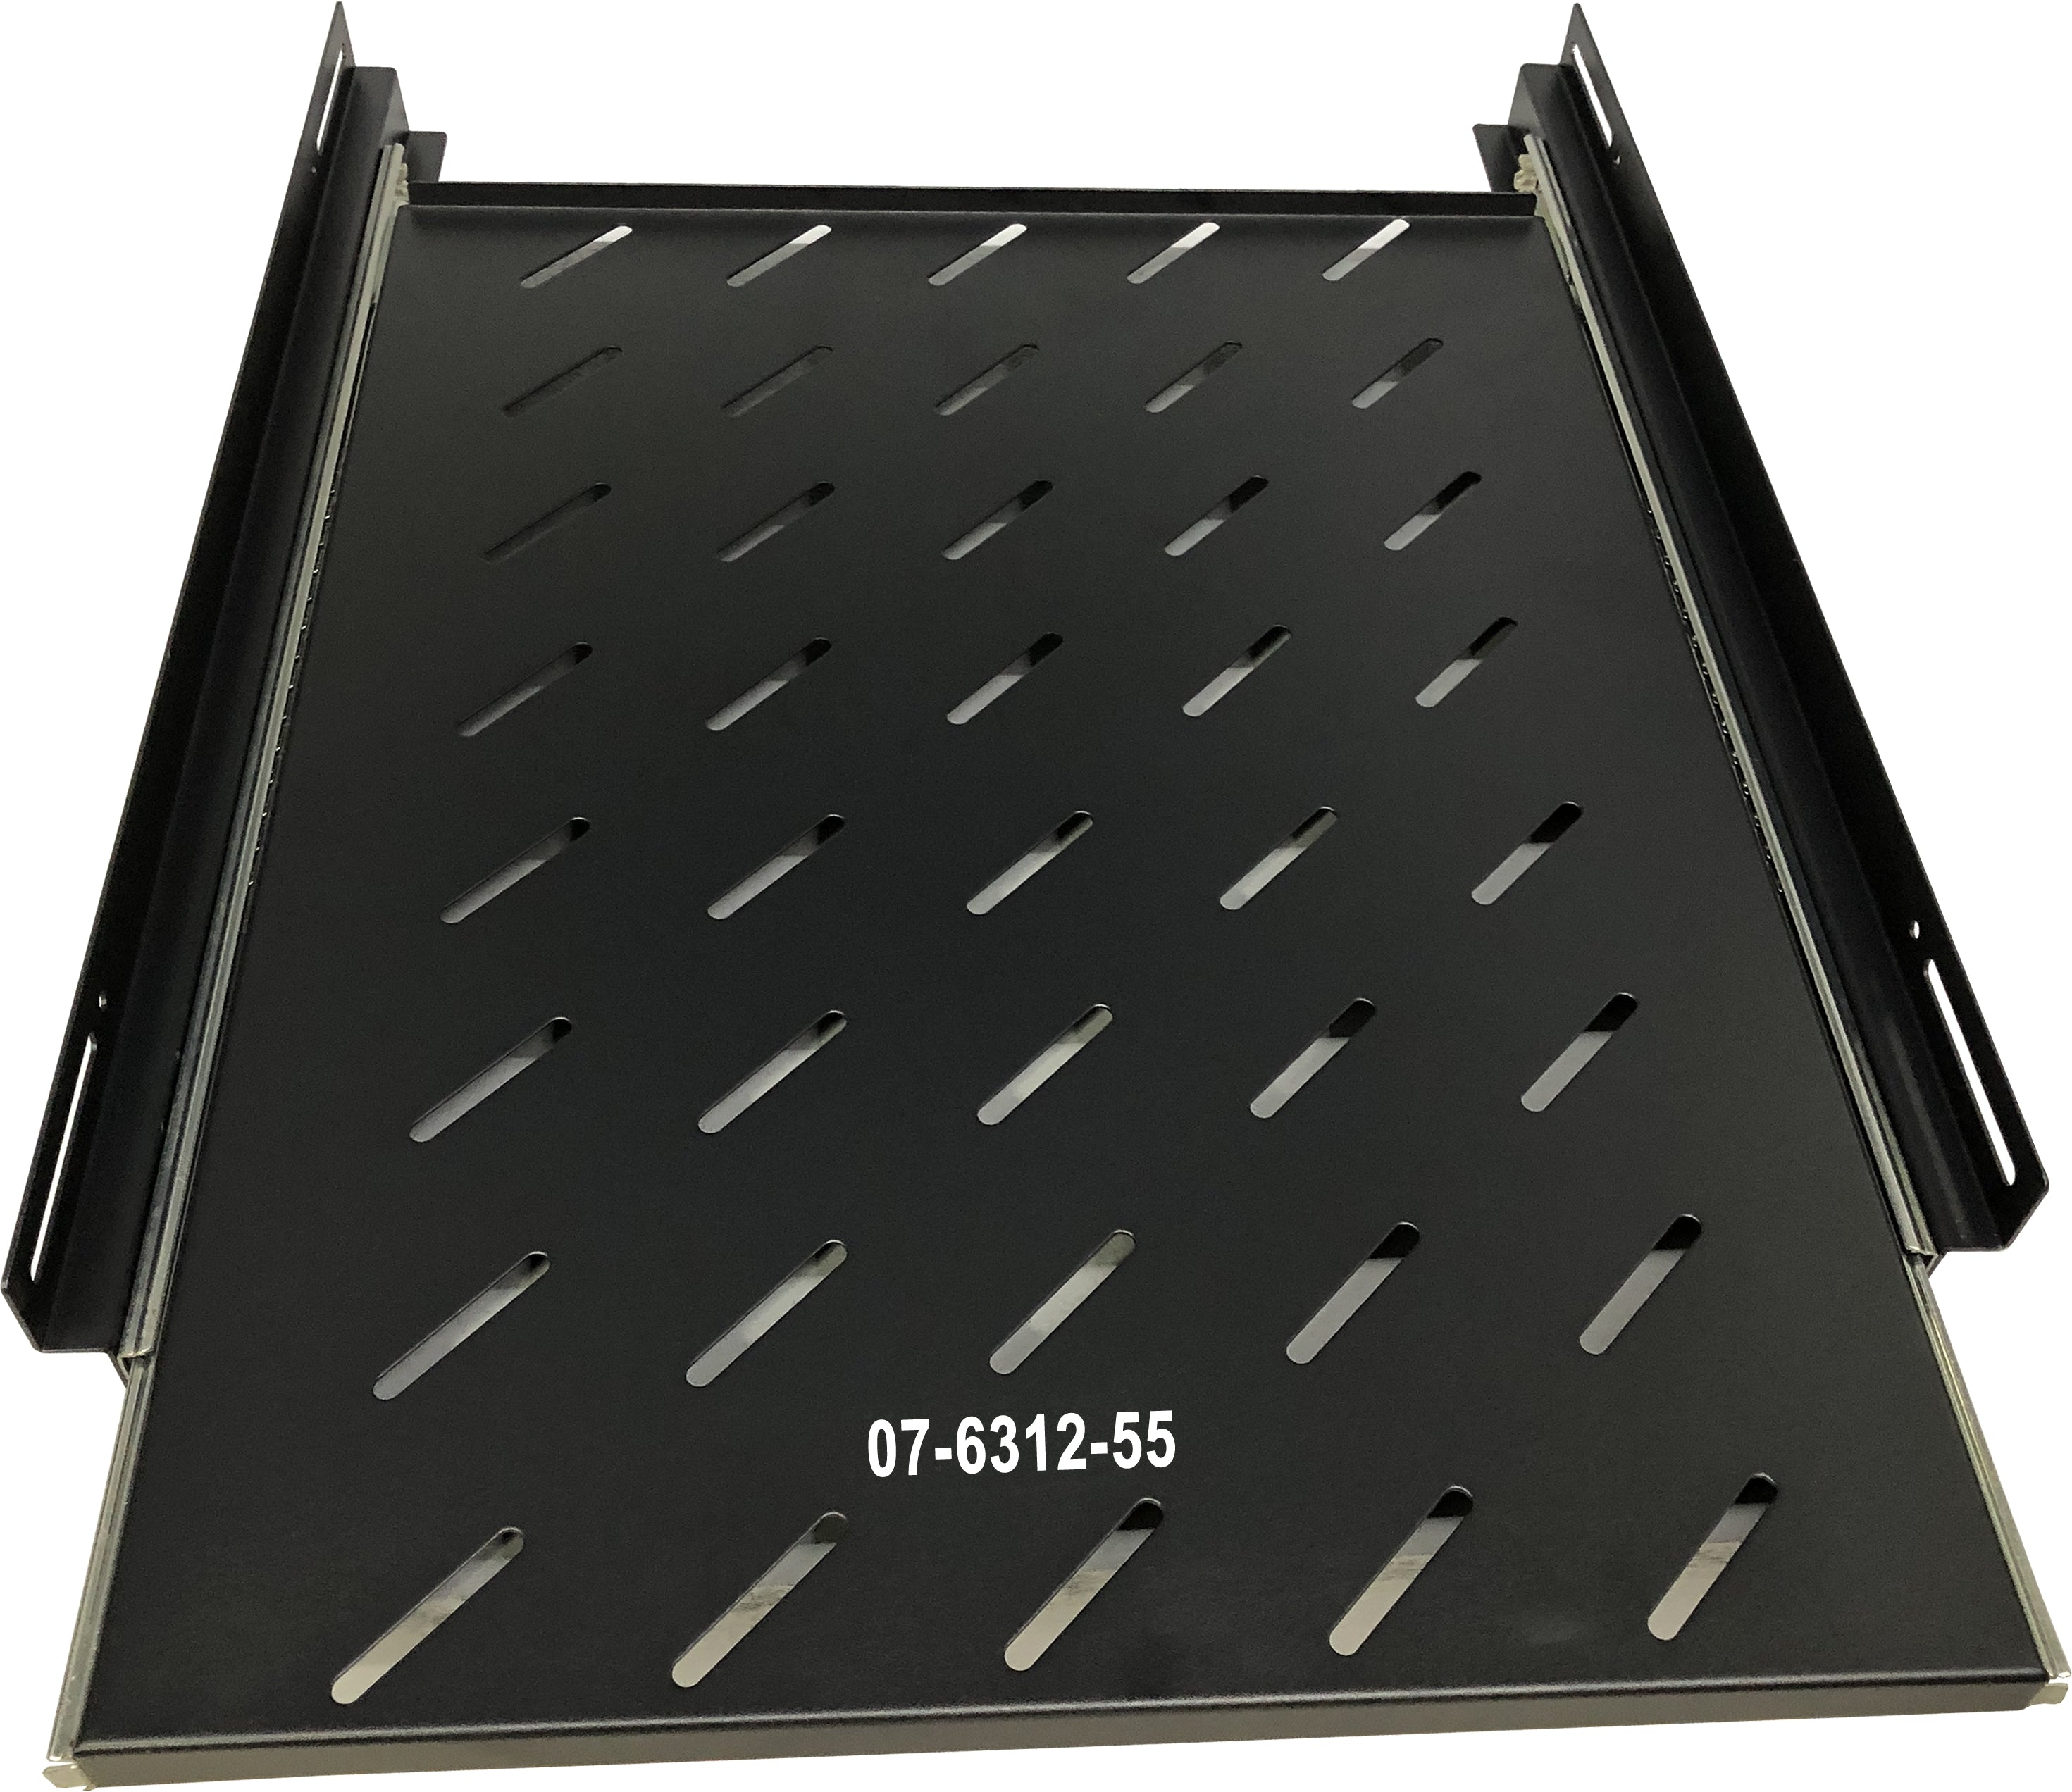 07-6312-55 1U Universal Rack Mount Sliding Shelf - 55cm for 80cm depth Cabinet